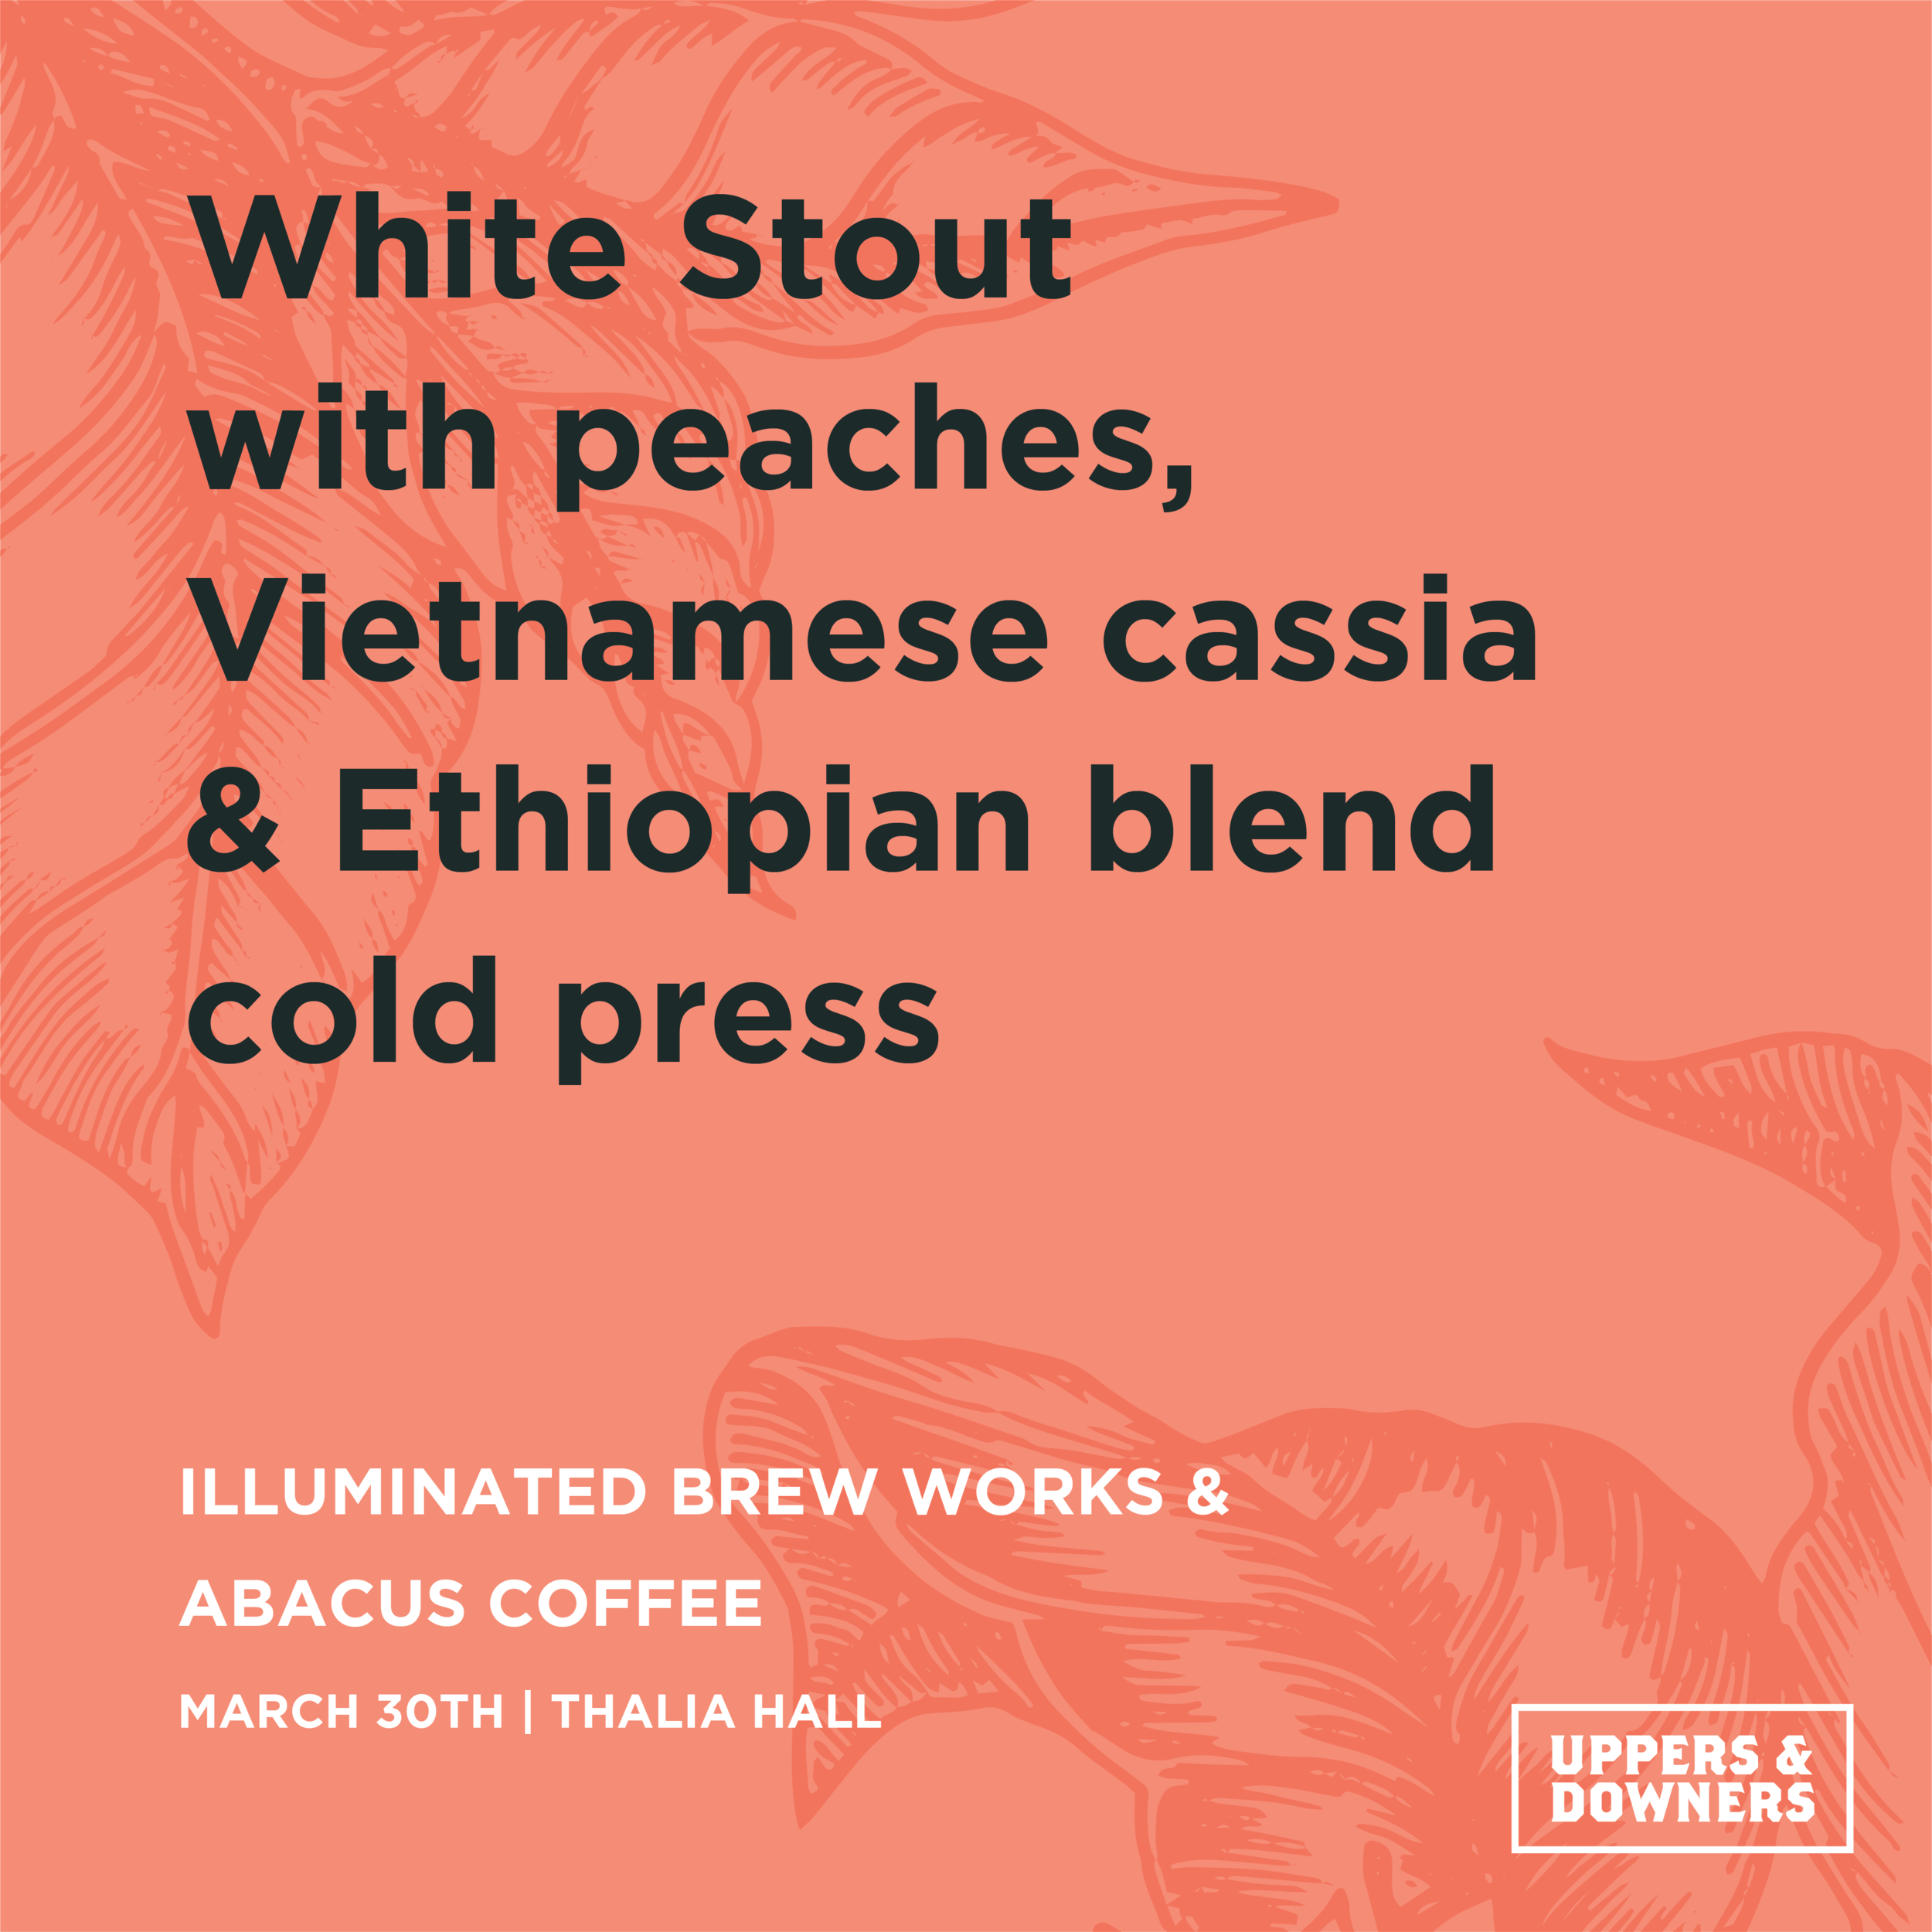 UD2019_Beer_Roaster_Instagram_Graphic_Illuminated_Abacus.png